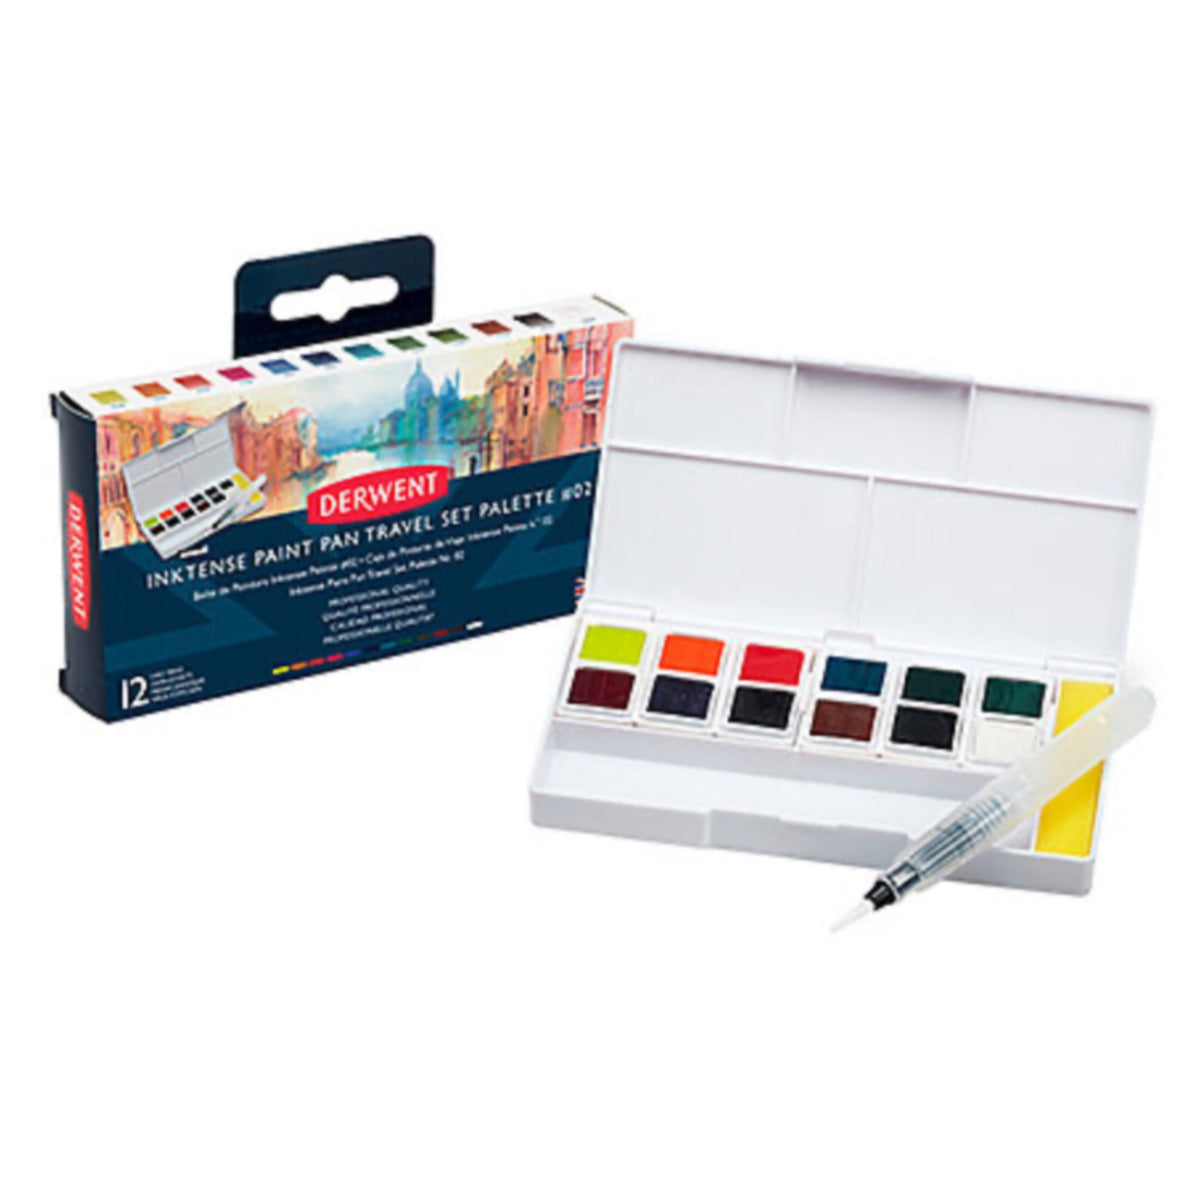 Derwent Inktense Paint Pan Travel Sets